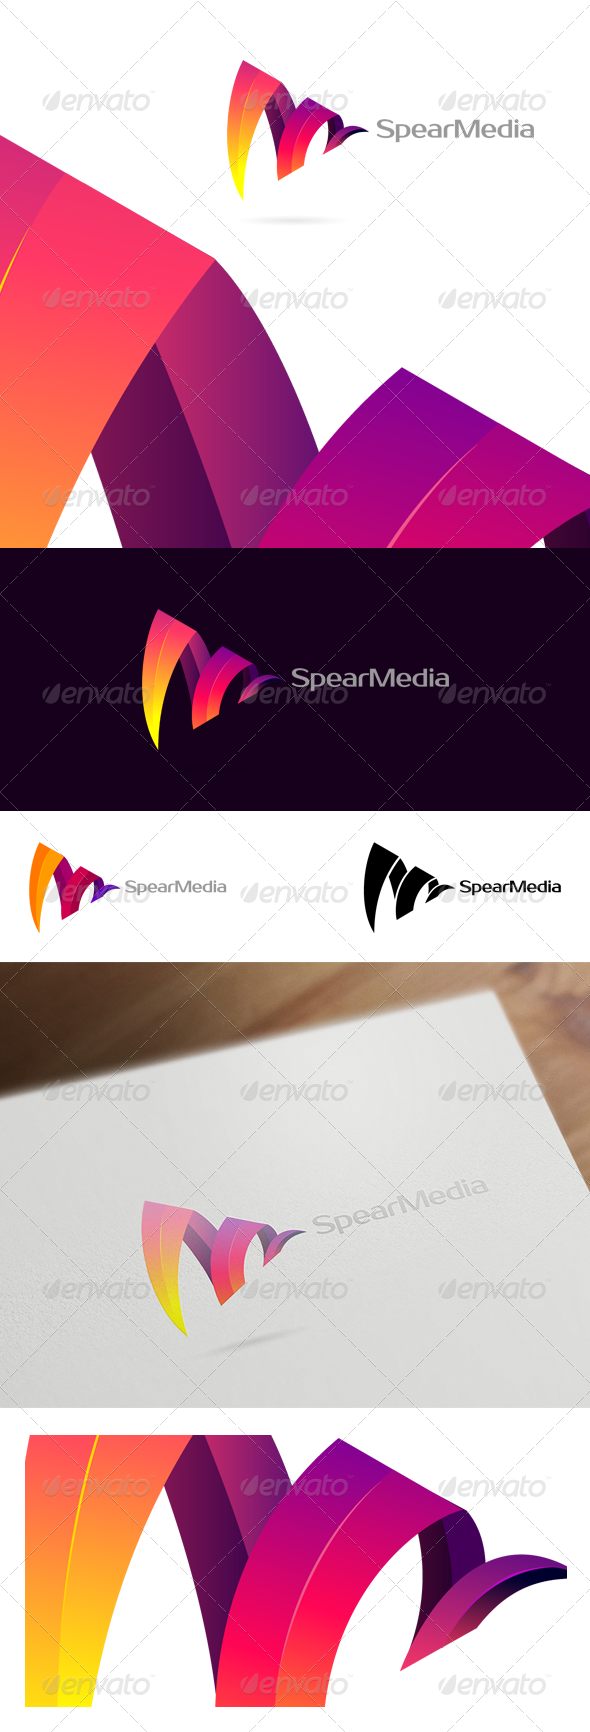 GraphicRiver Spear Media Colorful Corporate & Creative Logo 6275983